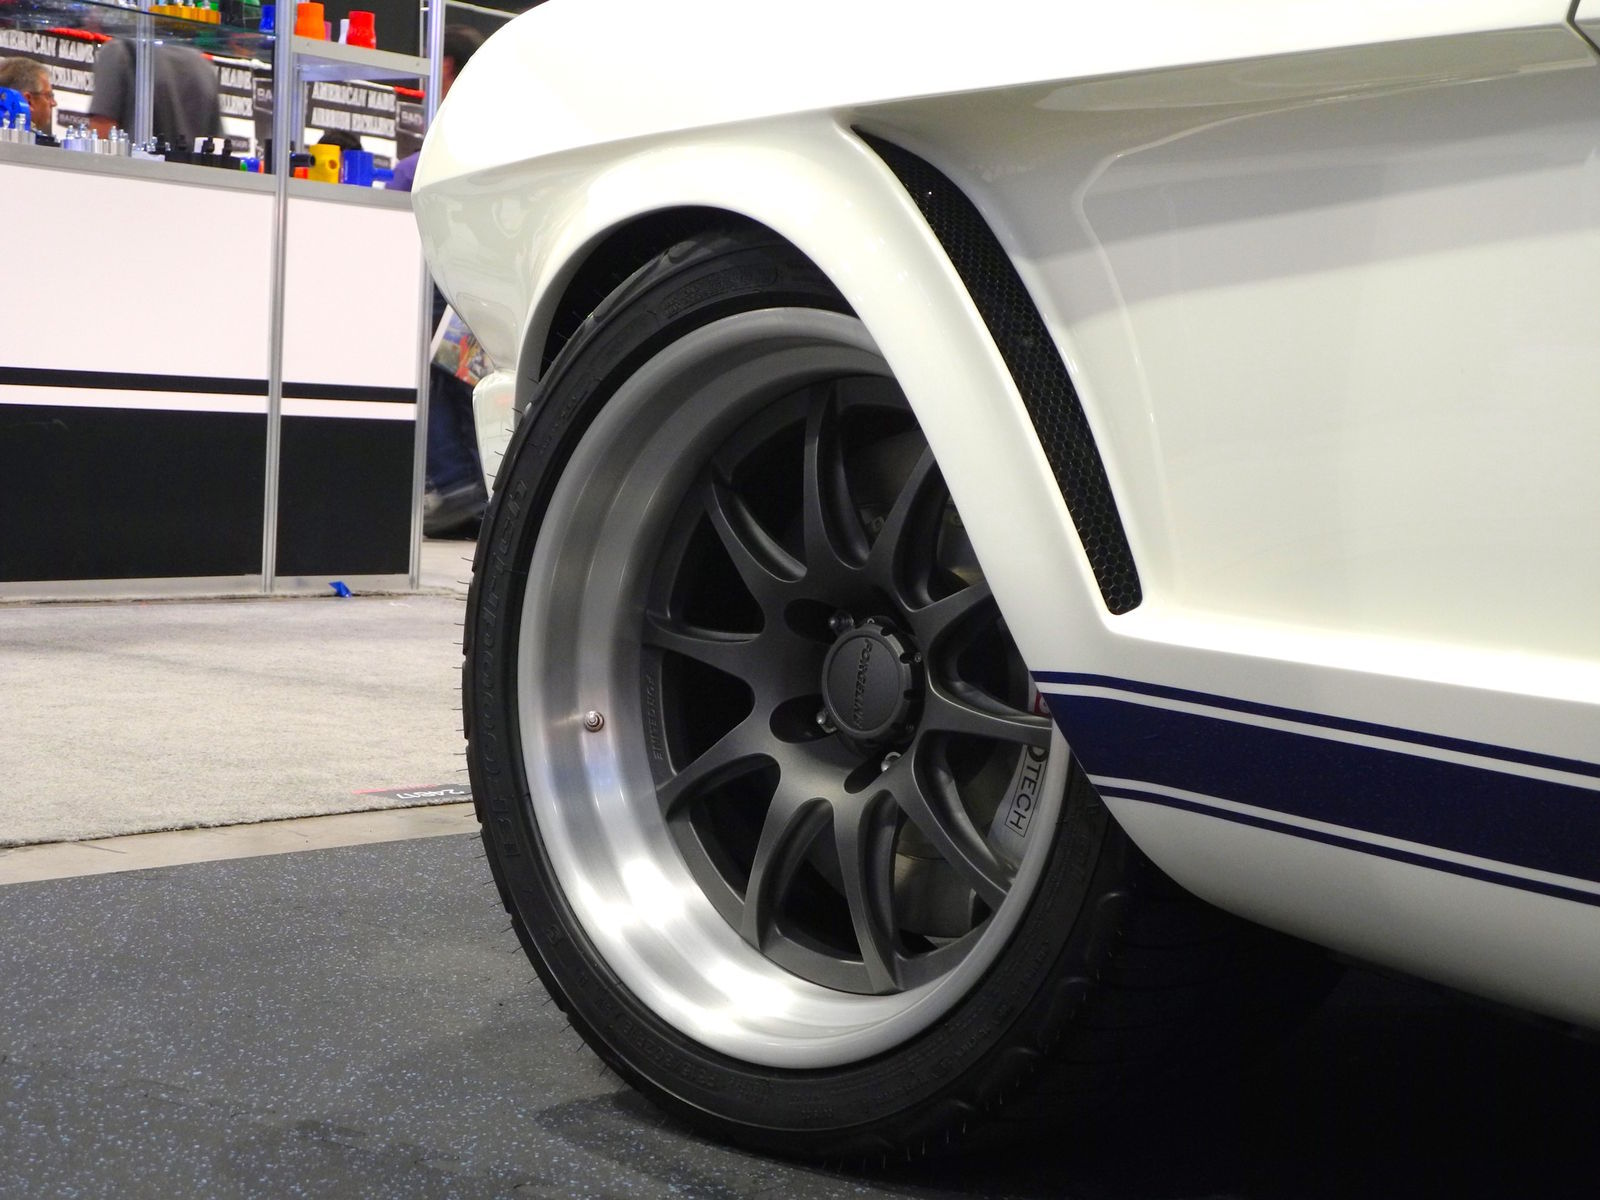 1965 Ford Mustang | Matt Alcala's Widebody 1965 Ford Mustang Fastback on Forgeline GZ3R Wheels